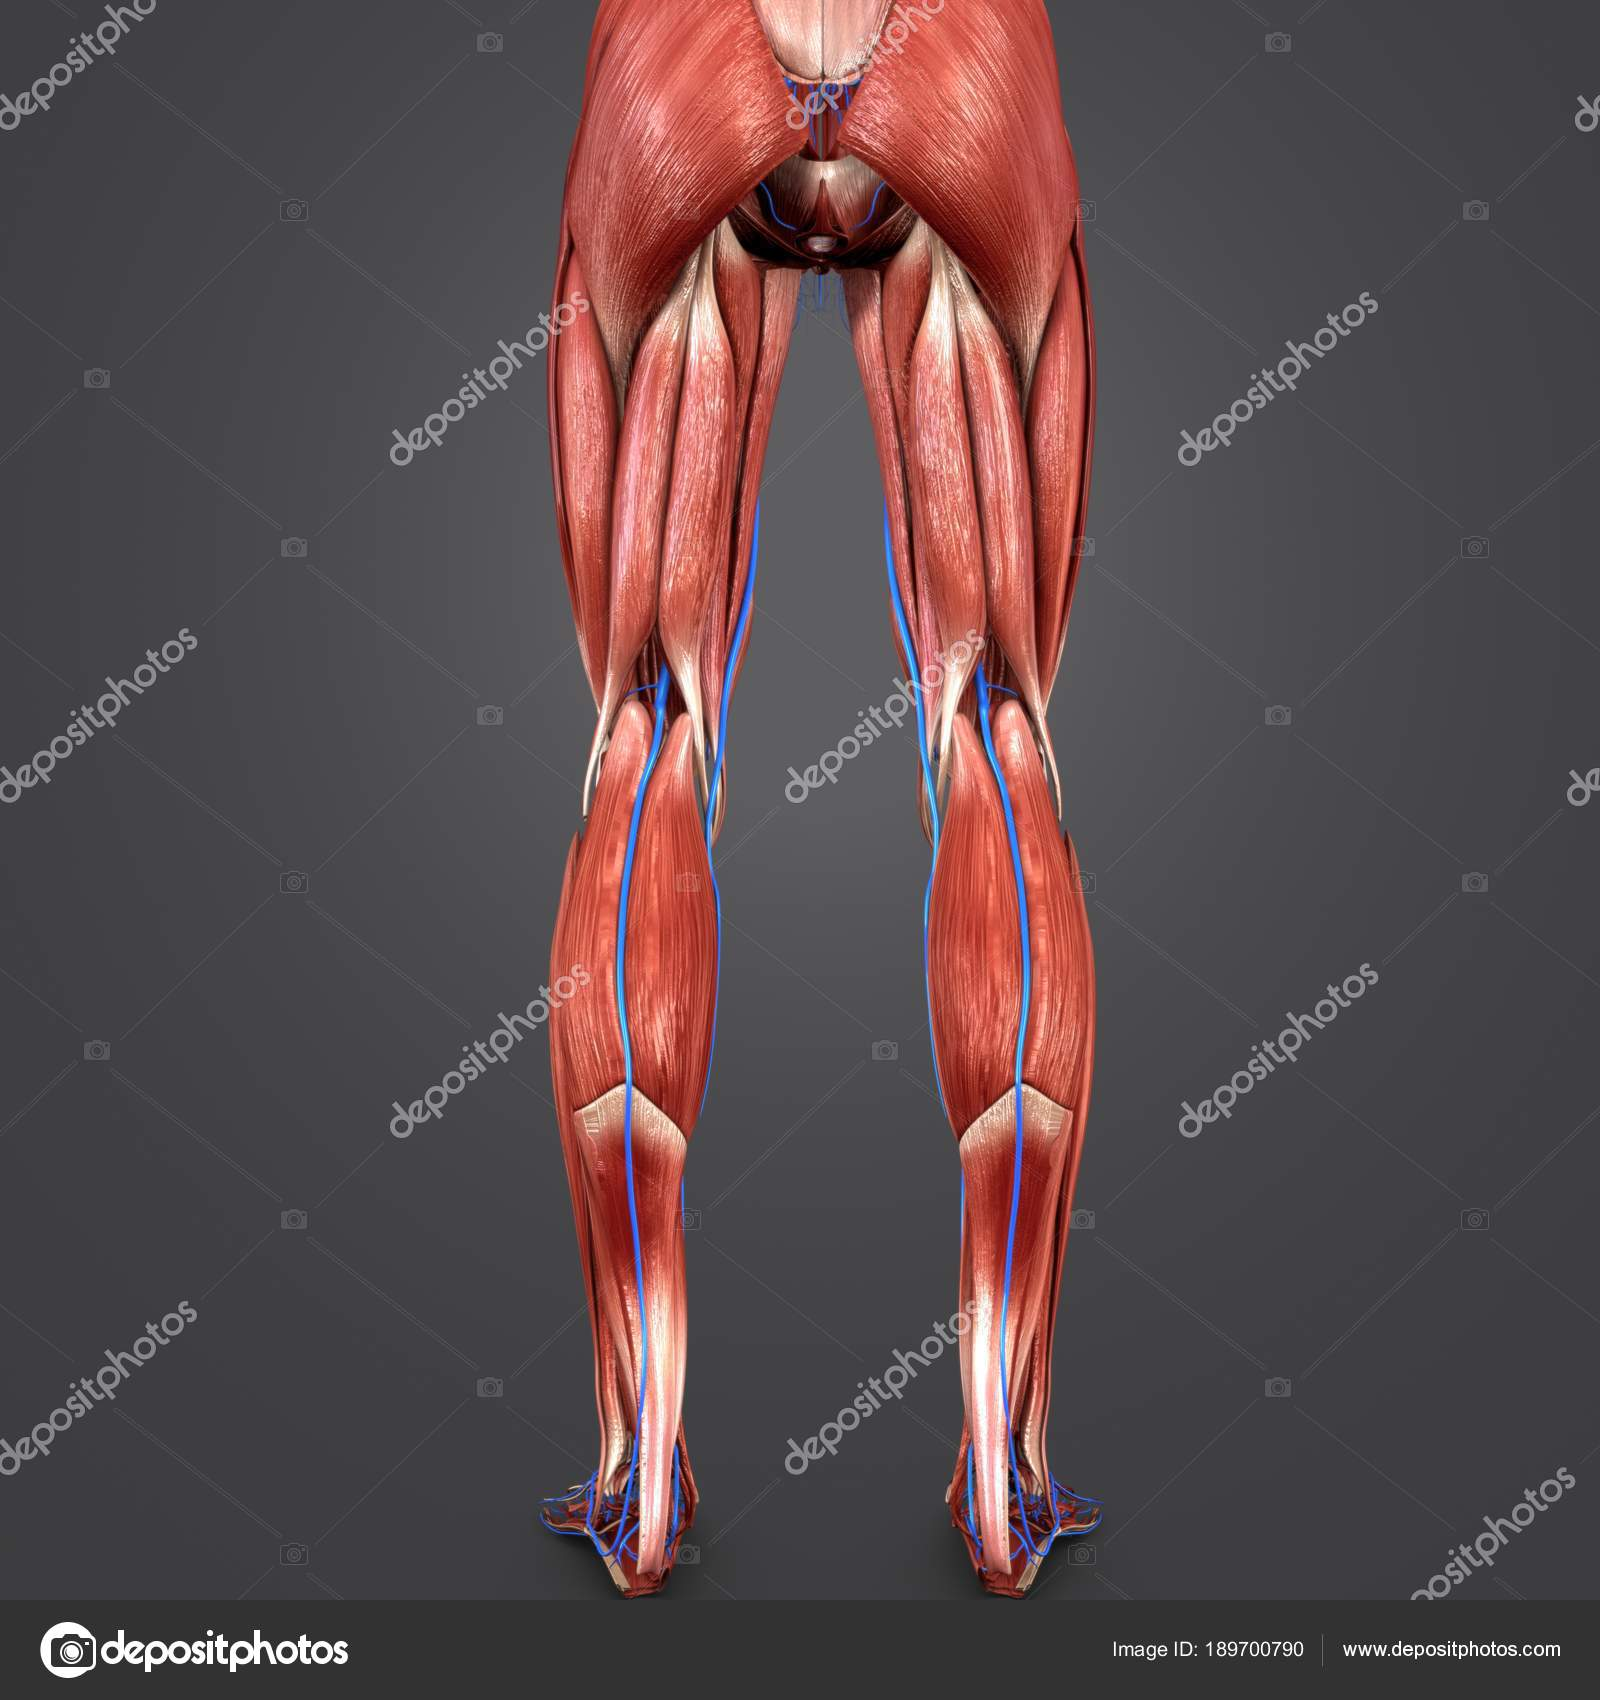 Colorful Medical Illustration Human Lower Limbs Veins Posterior View ...